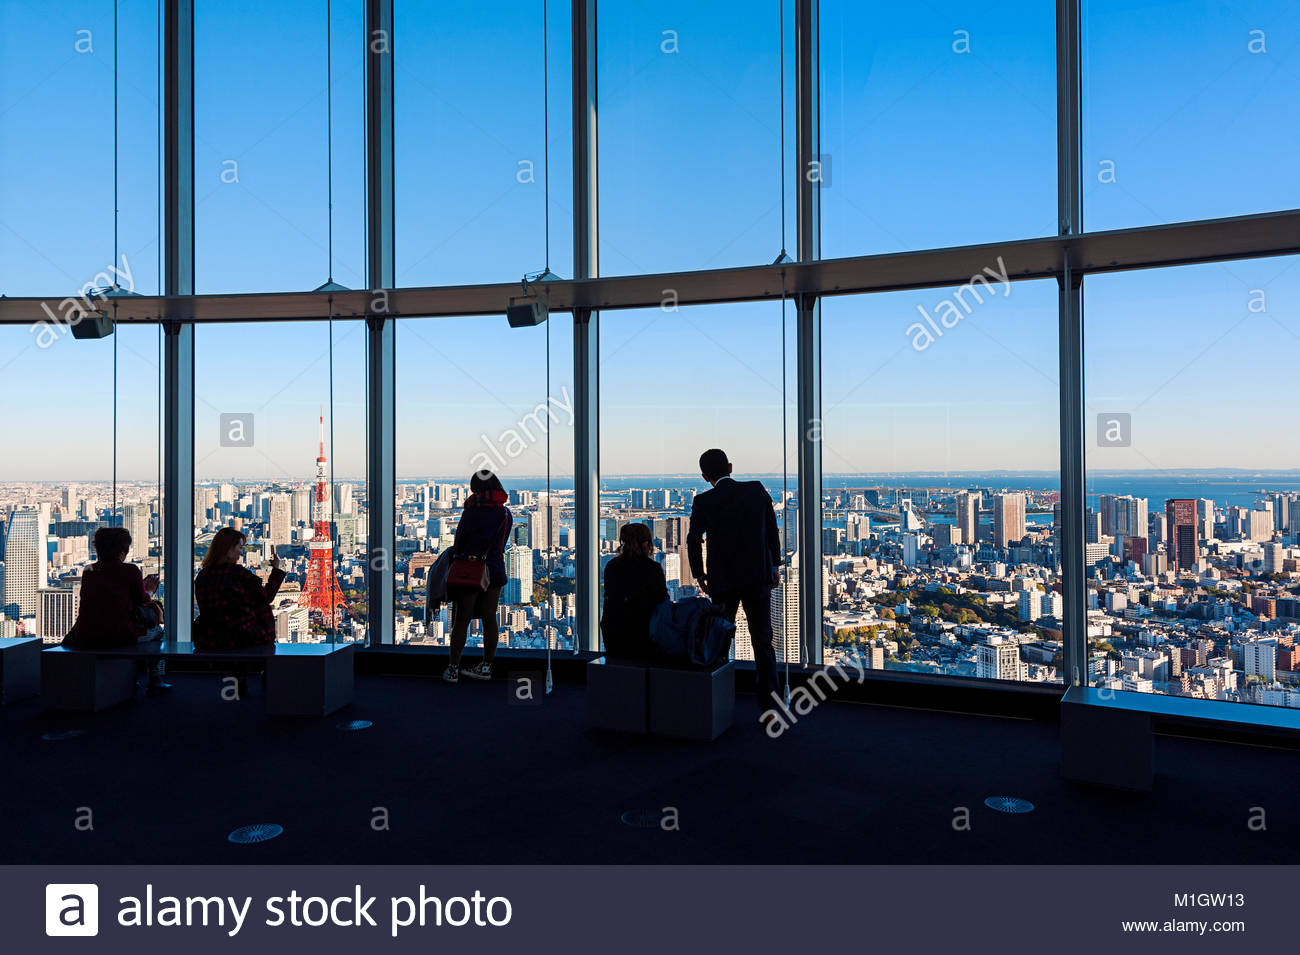 Roppongi Hills Mori Tower Tokyo City View Photo Stock